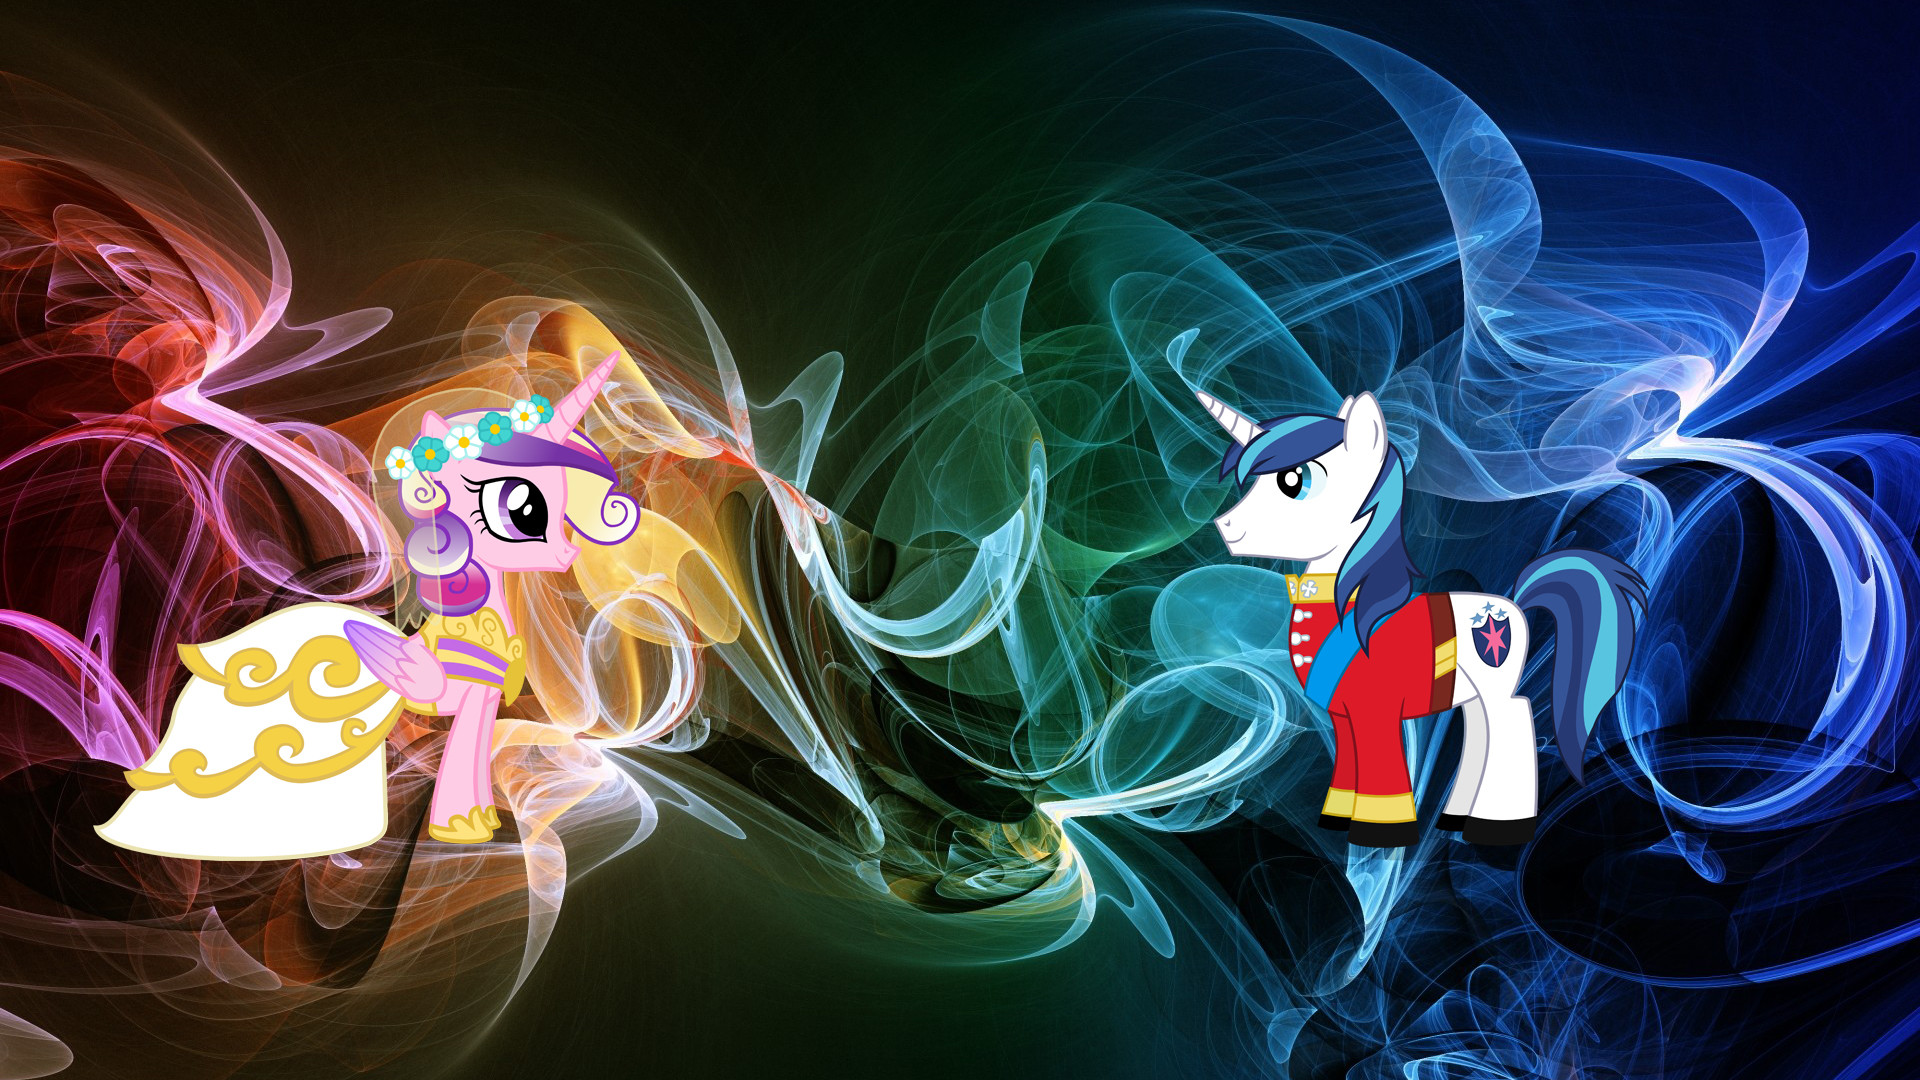 1920x1080 princess cadance and shining armor wallpaper by bigmacintosh7 d4vp45m